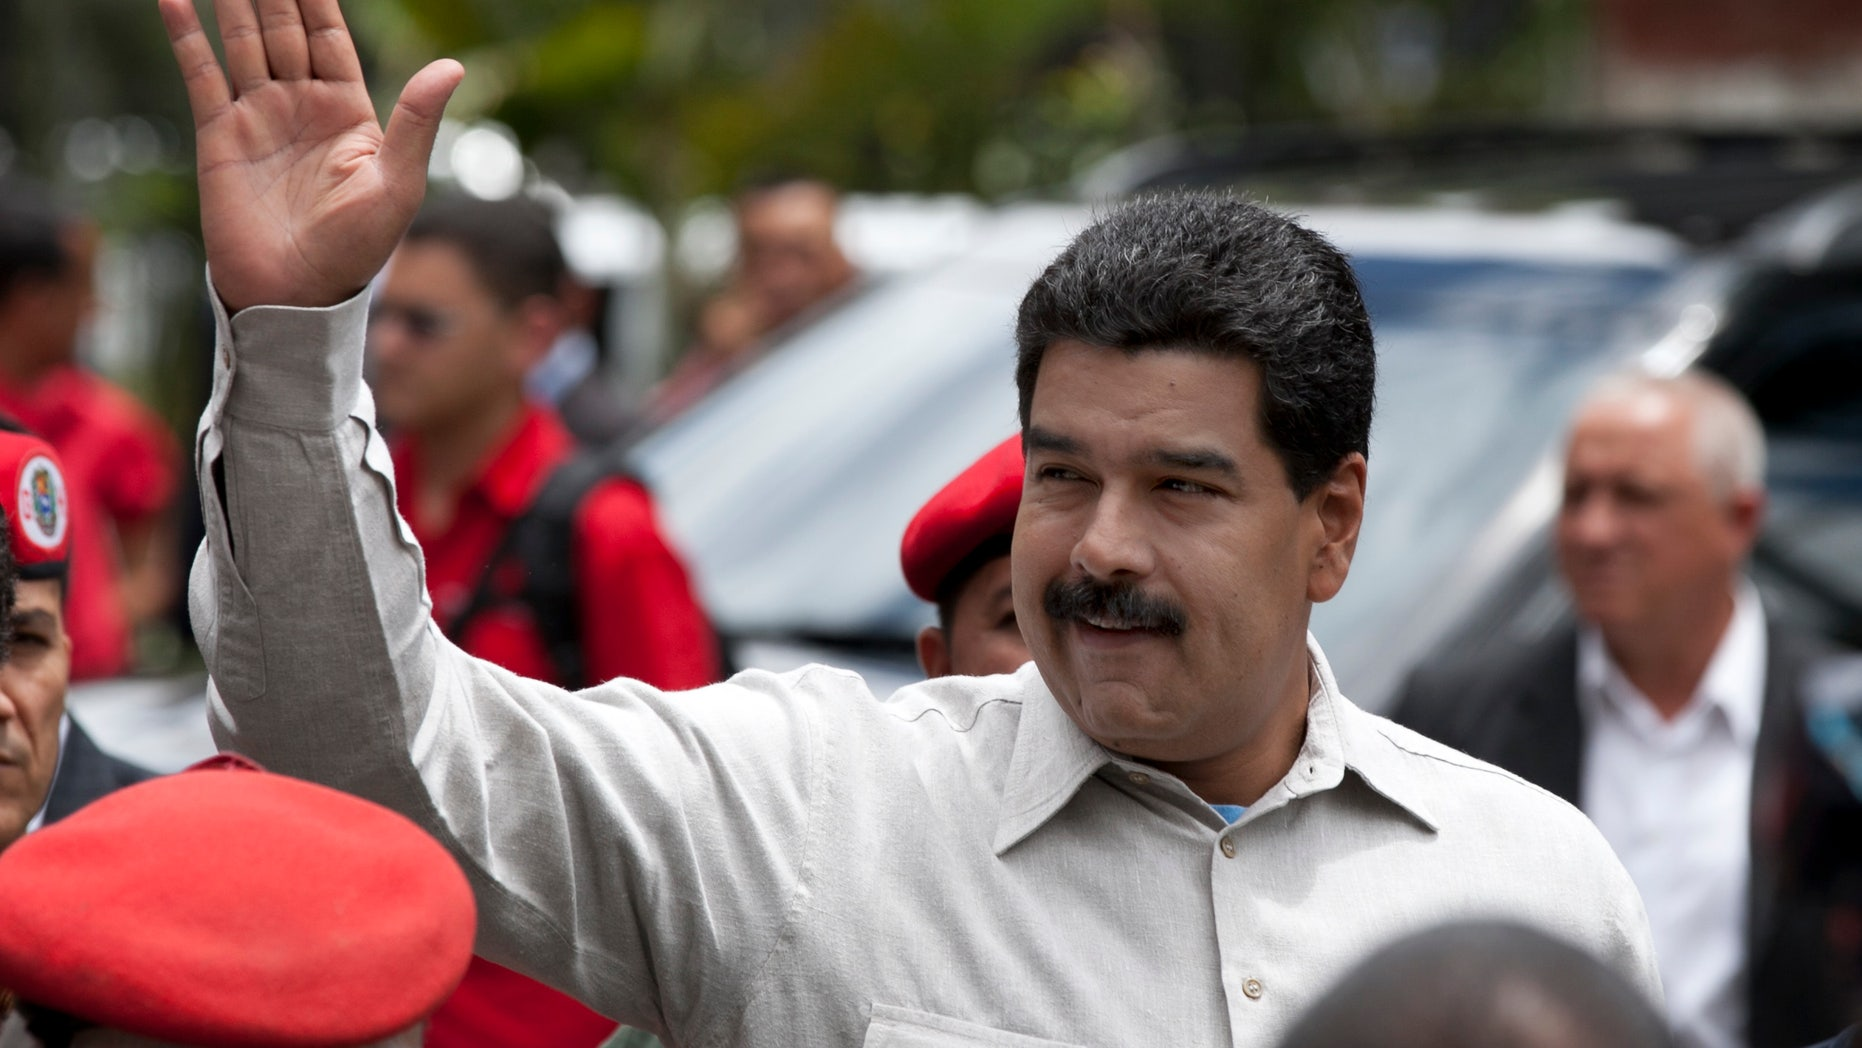 Nicolás Maduro waves during a visit to the Bolivarian National Guard command in Caracas, Venezuela, on Oct. 2, 2013.